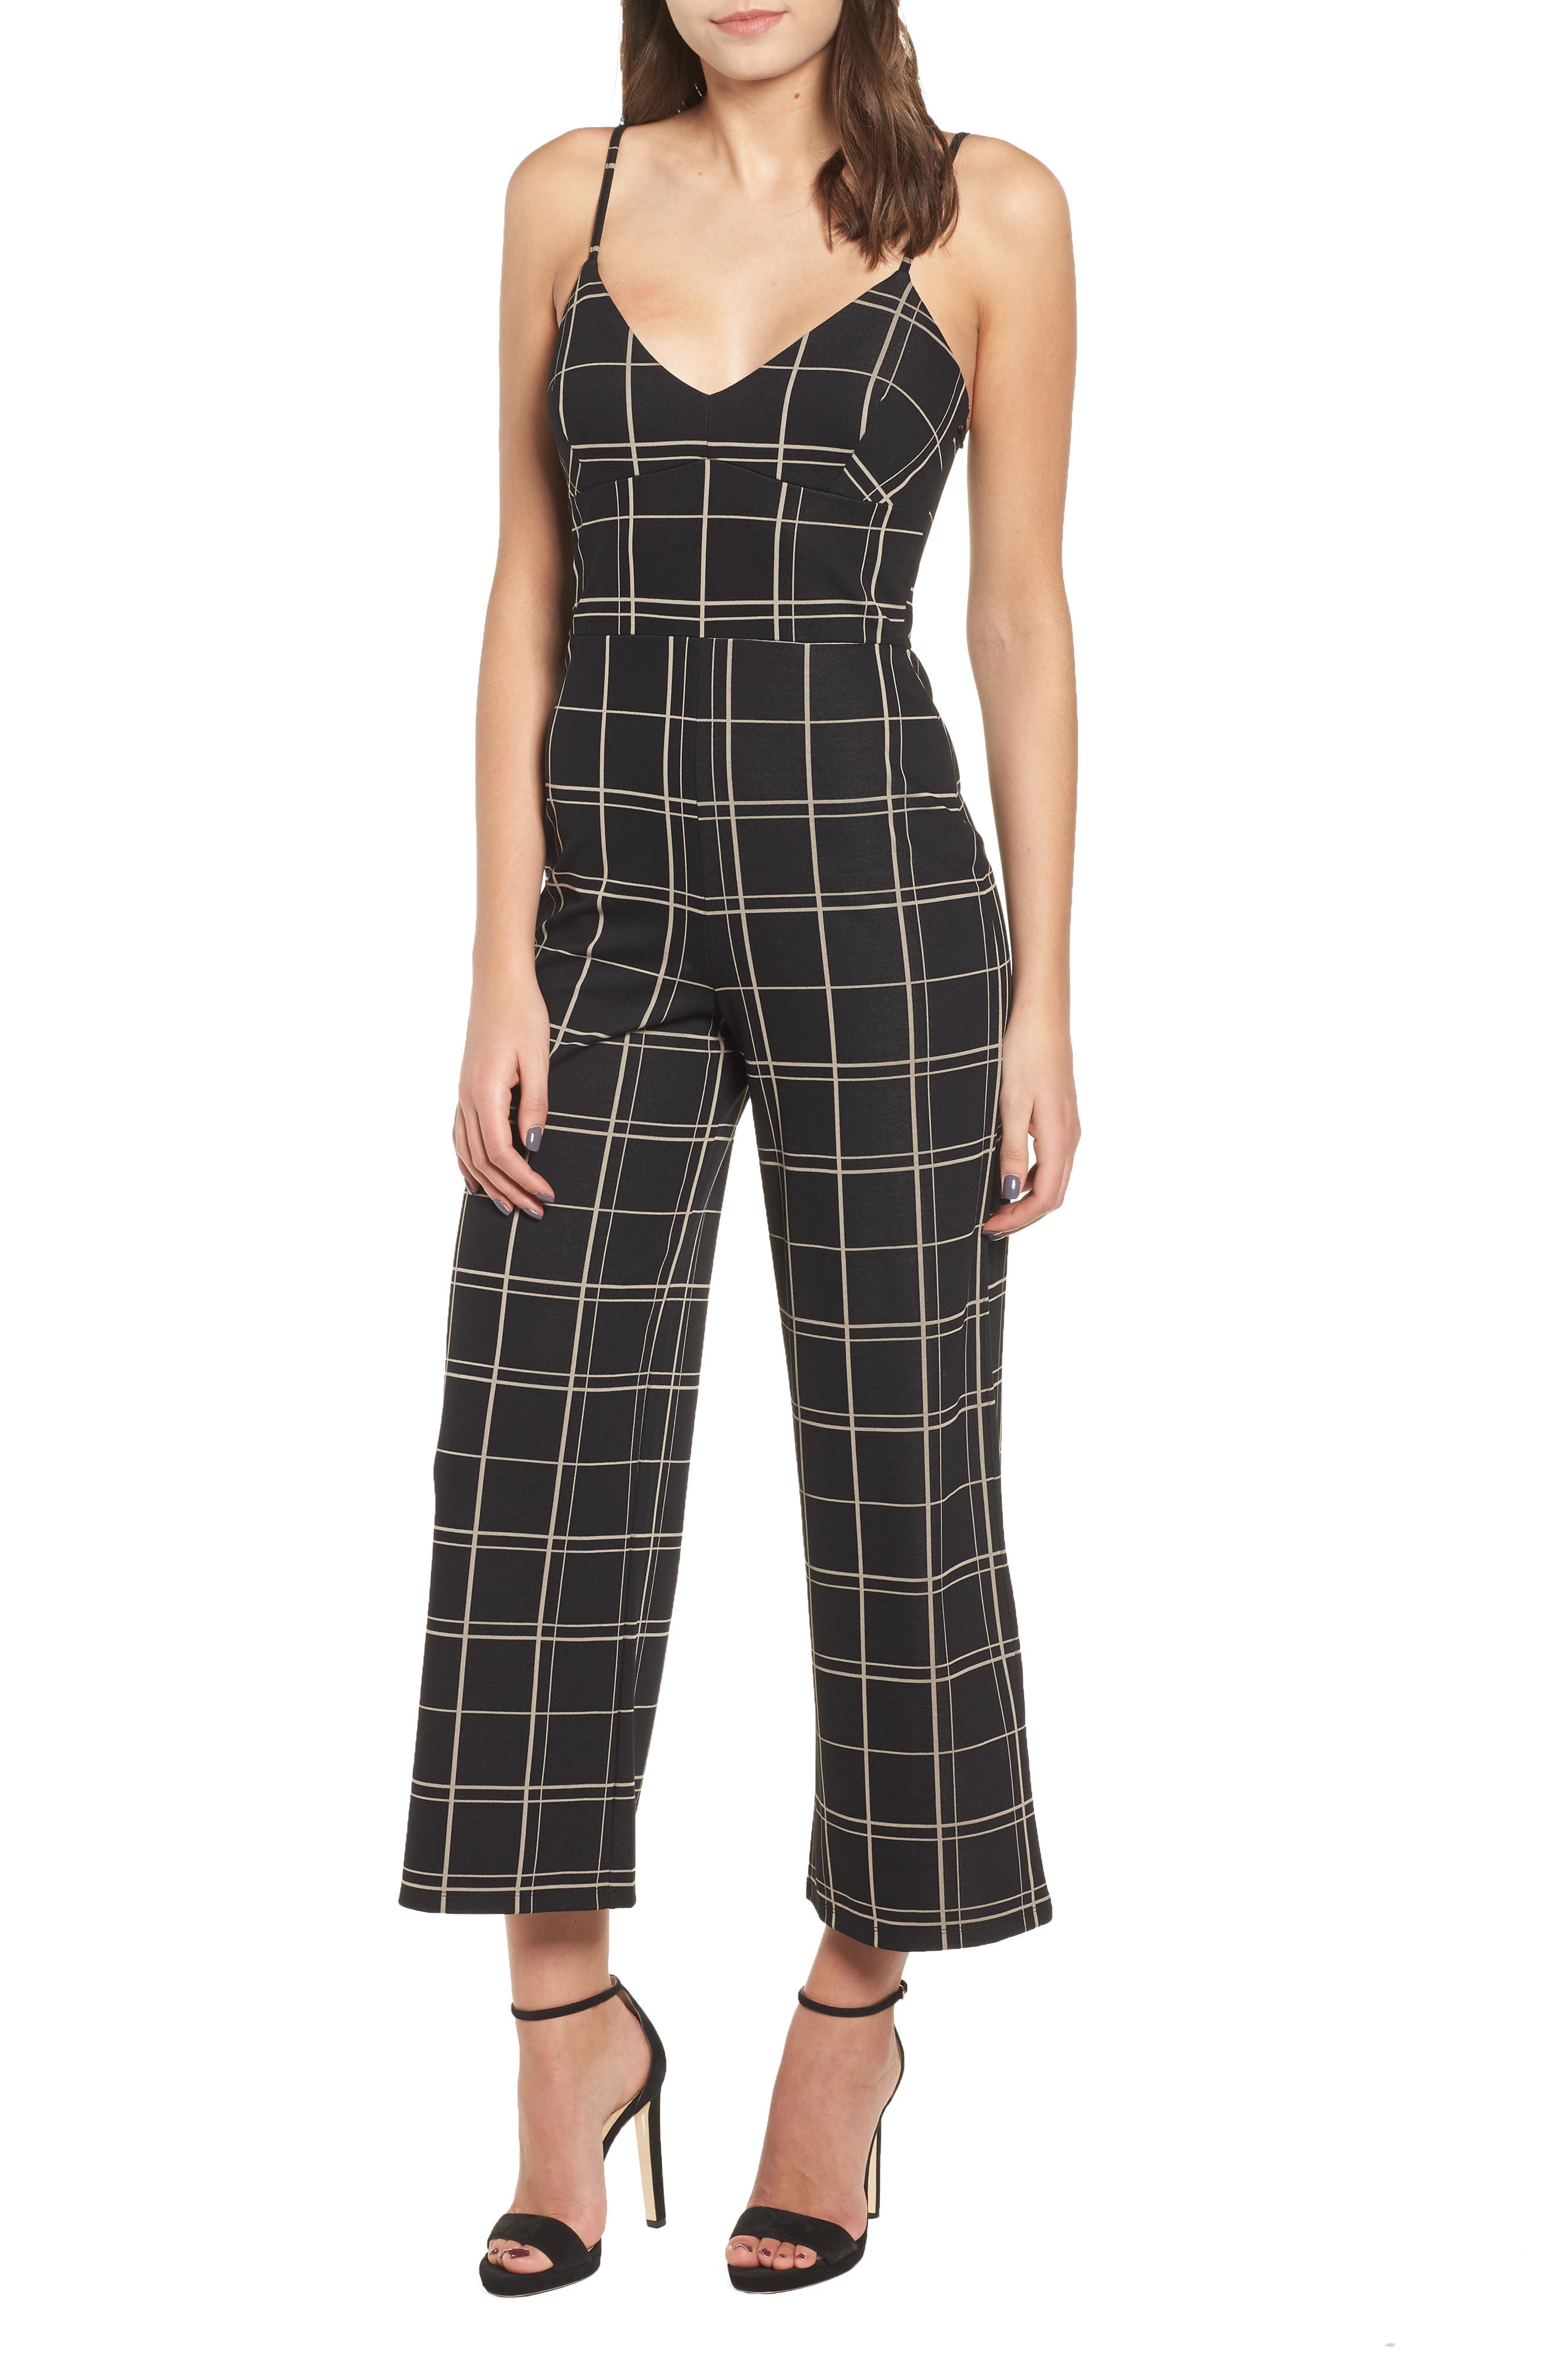 Windowpane Check Jumpsuit,                             Main thumbnail 1, color,                             BLACK GLAM CITY WINDOWS